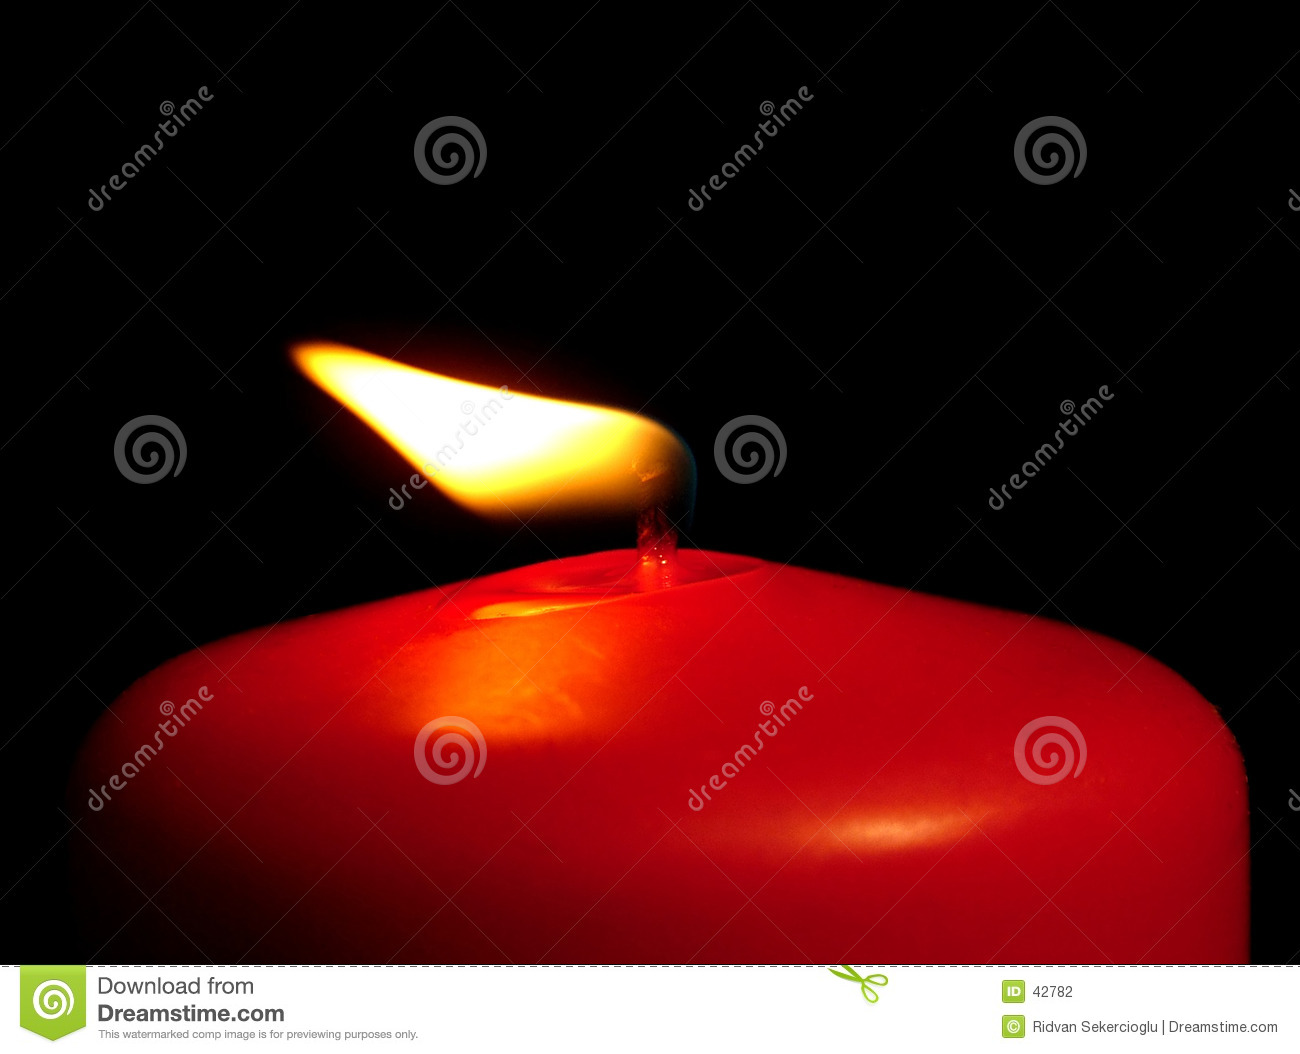 Red Candle in the Wind